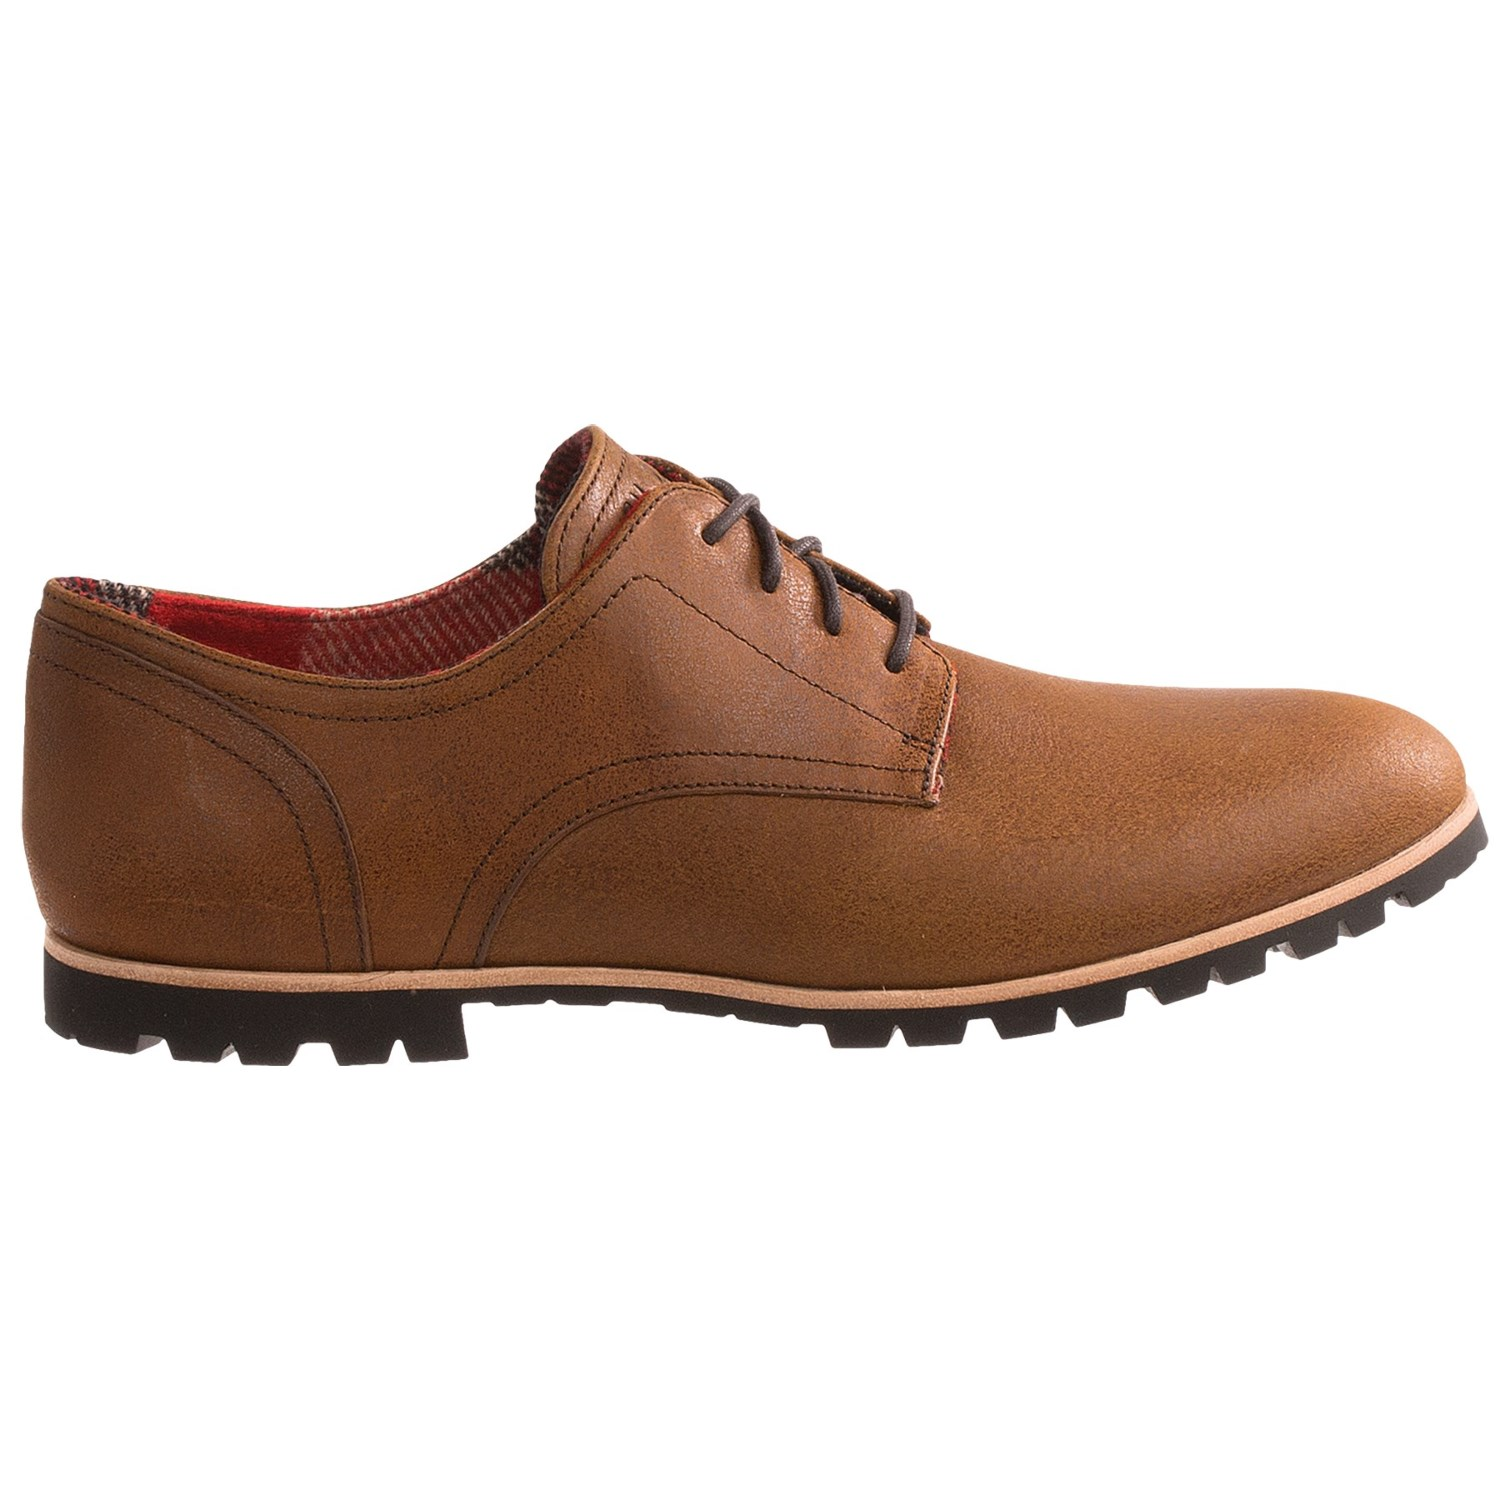 adams men Shop stacy adams men's and boys' collections at stacyadamscom includes classic shoes, modern shoes, fashion shoes, relaxed shoes, brockton originals, and the los lonely boys collection as well as clothing and accessories.